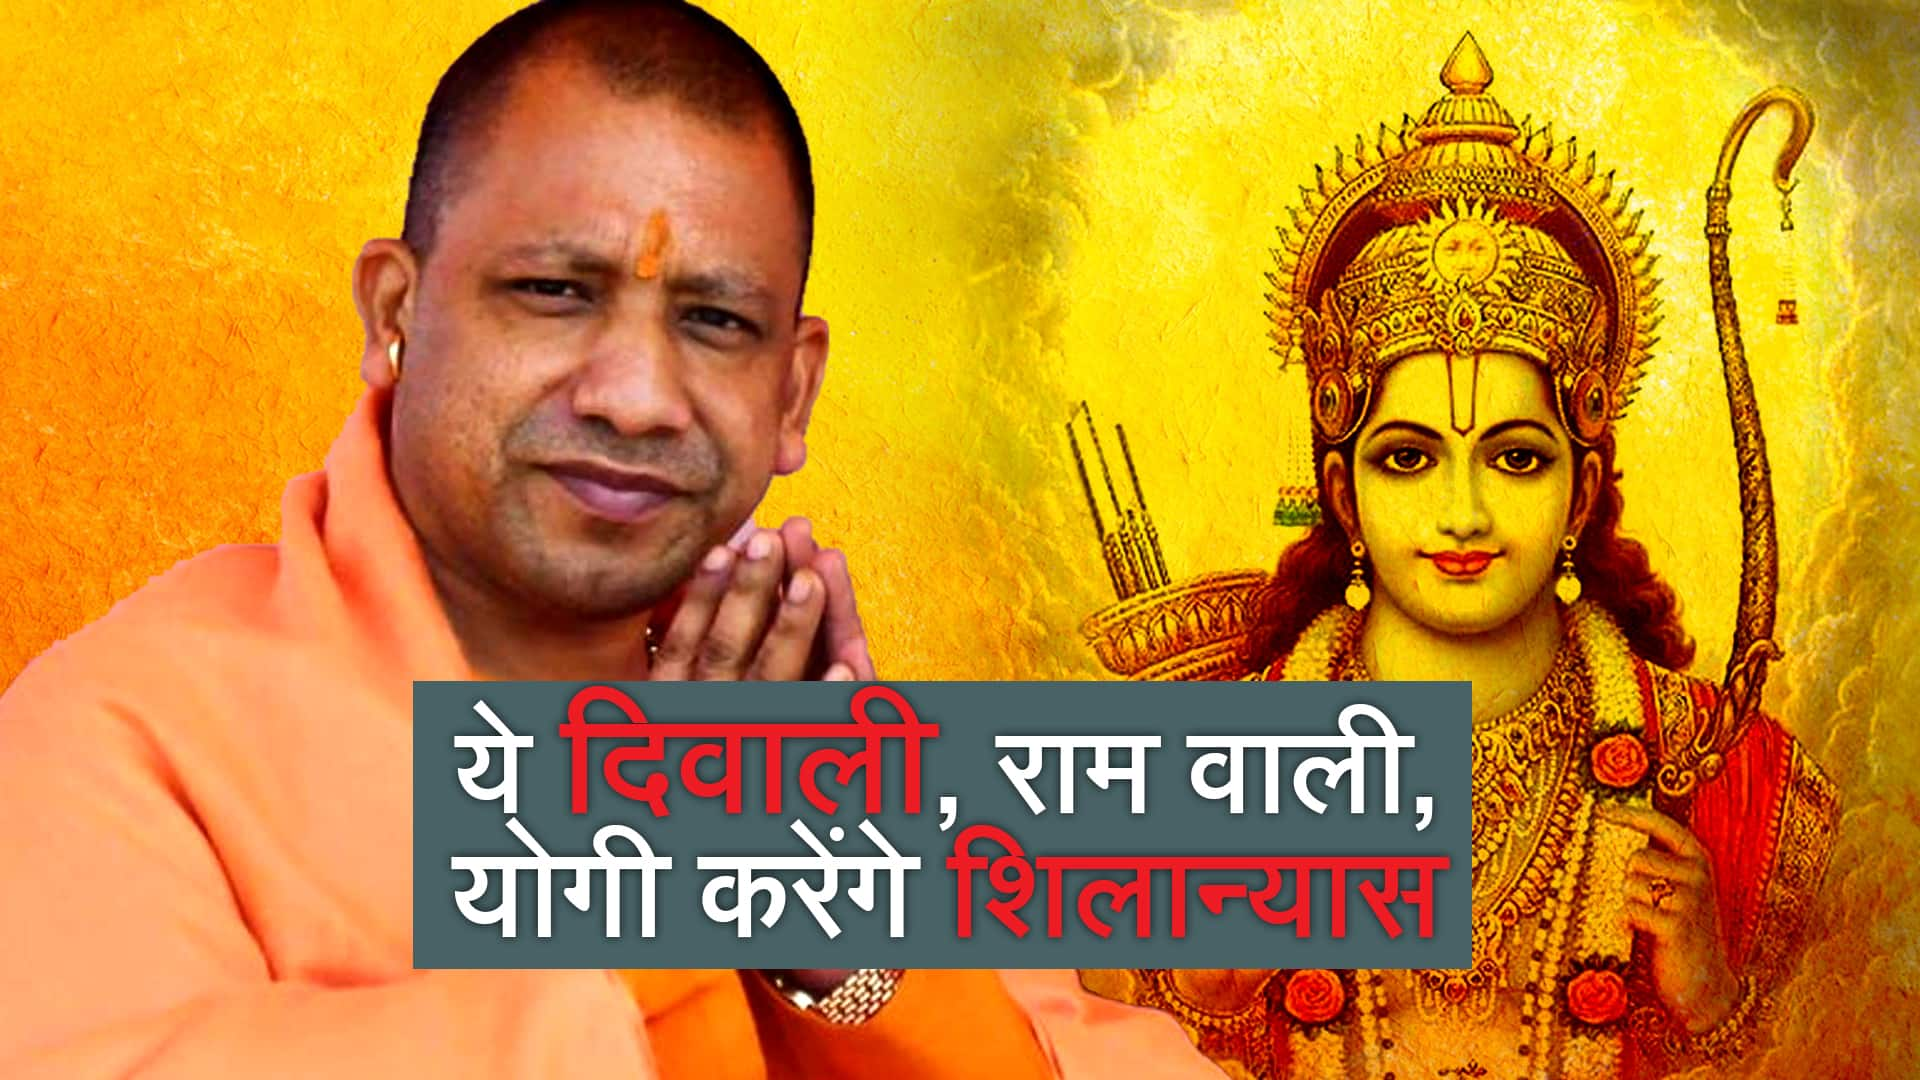 108 metre tall Lord Ram statue in Ayodhya, CM Yogi to launch project